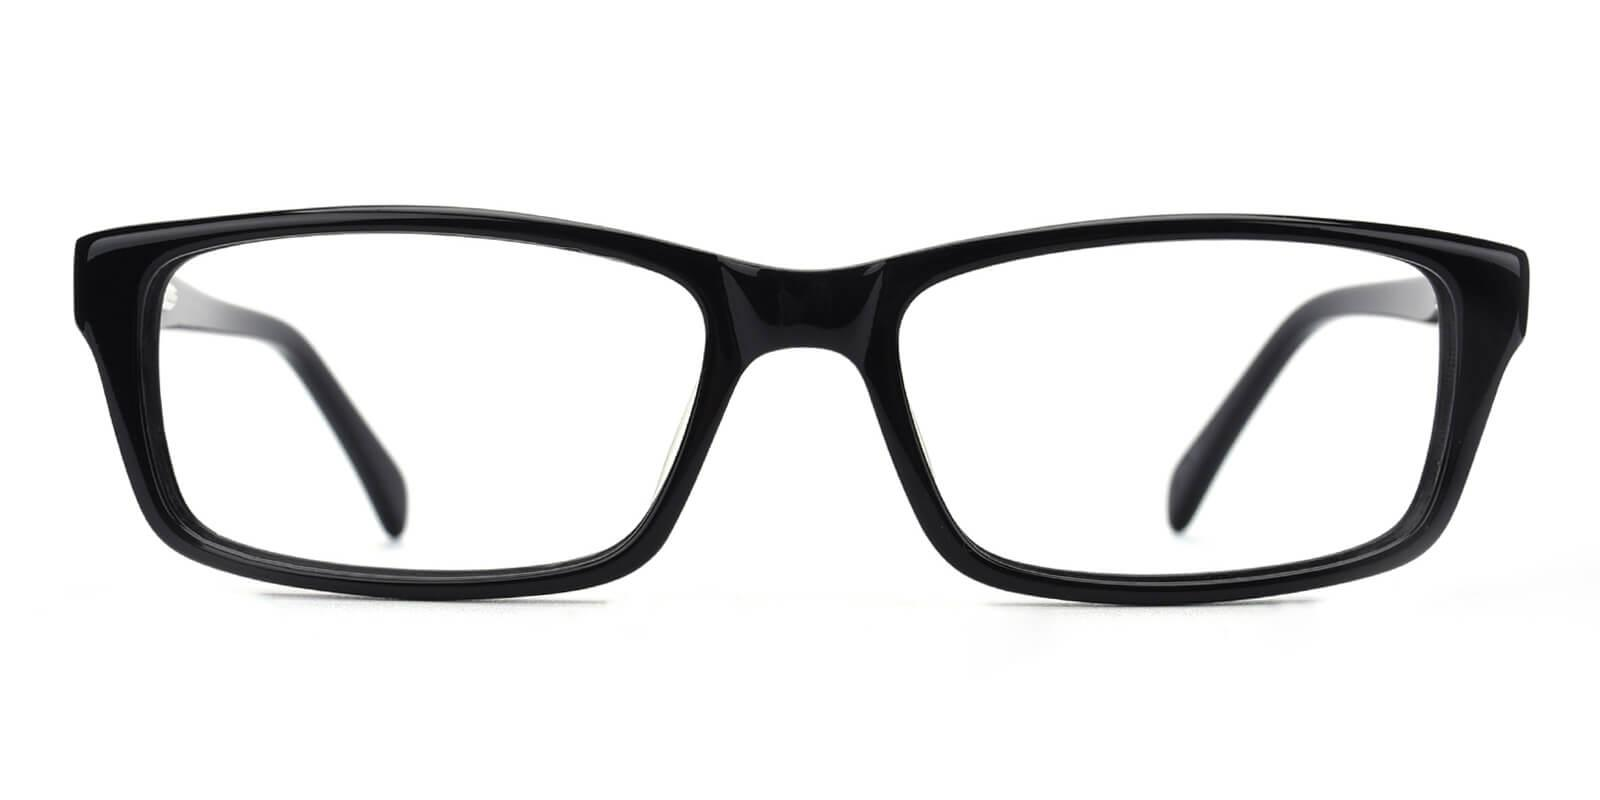 Dummer-Black-Rectangle-Acetate-Eyeglasses-additional2